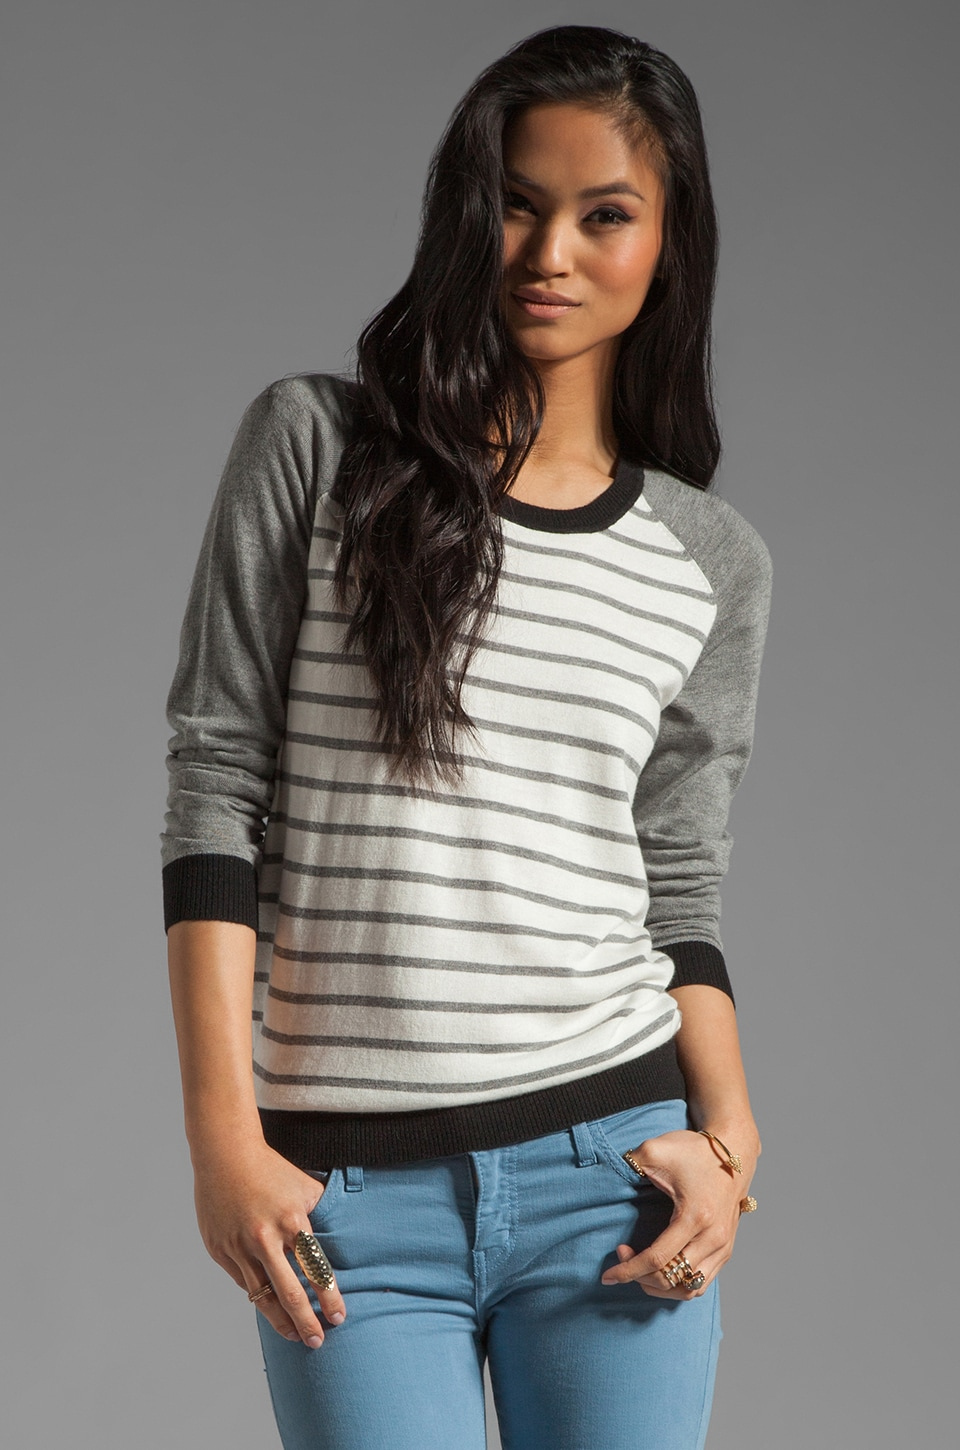 Joie Jabel Color Block Stripe Sweater in Heather Grey